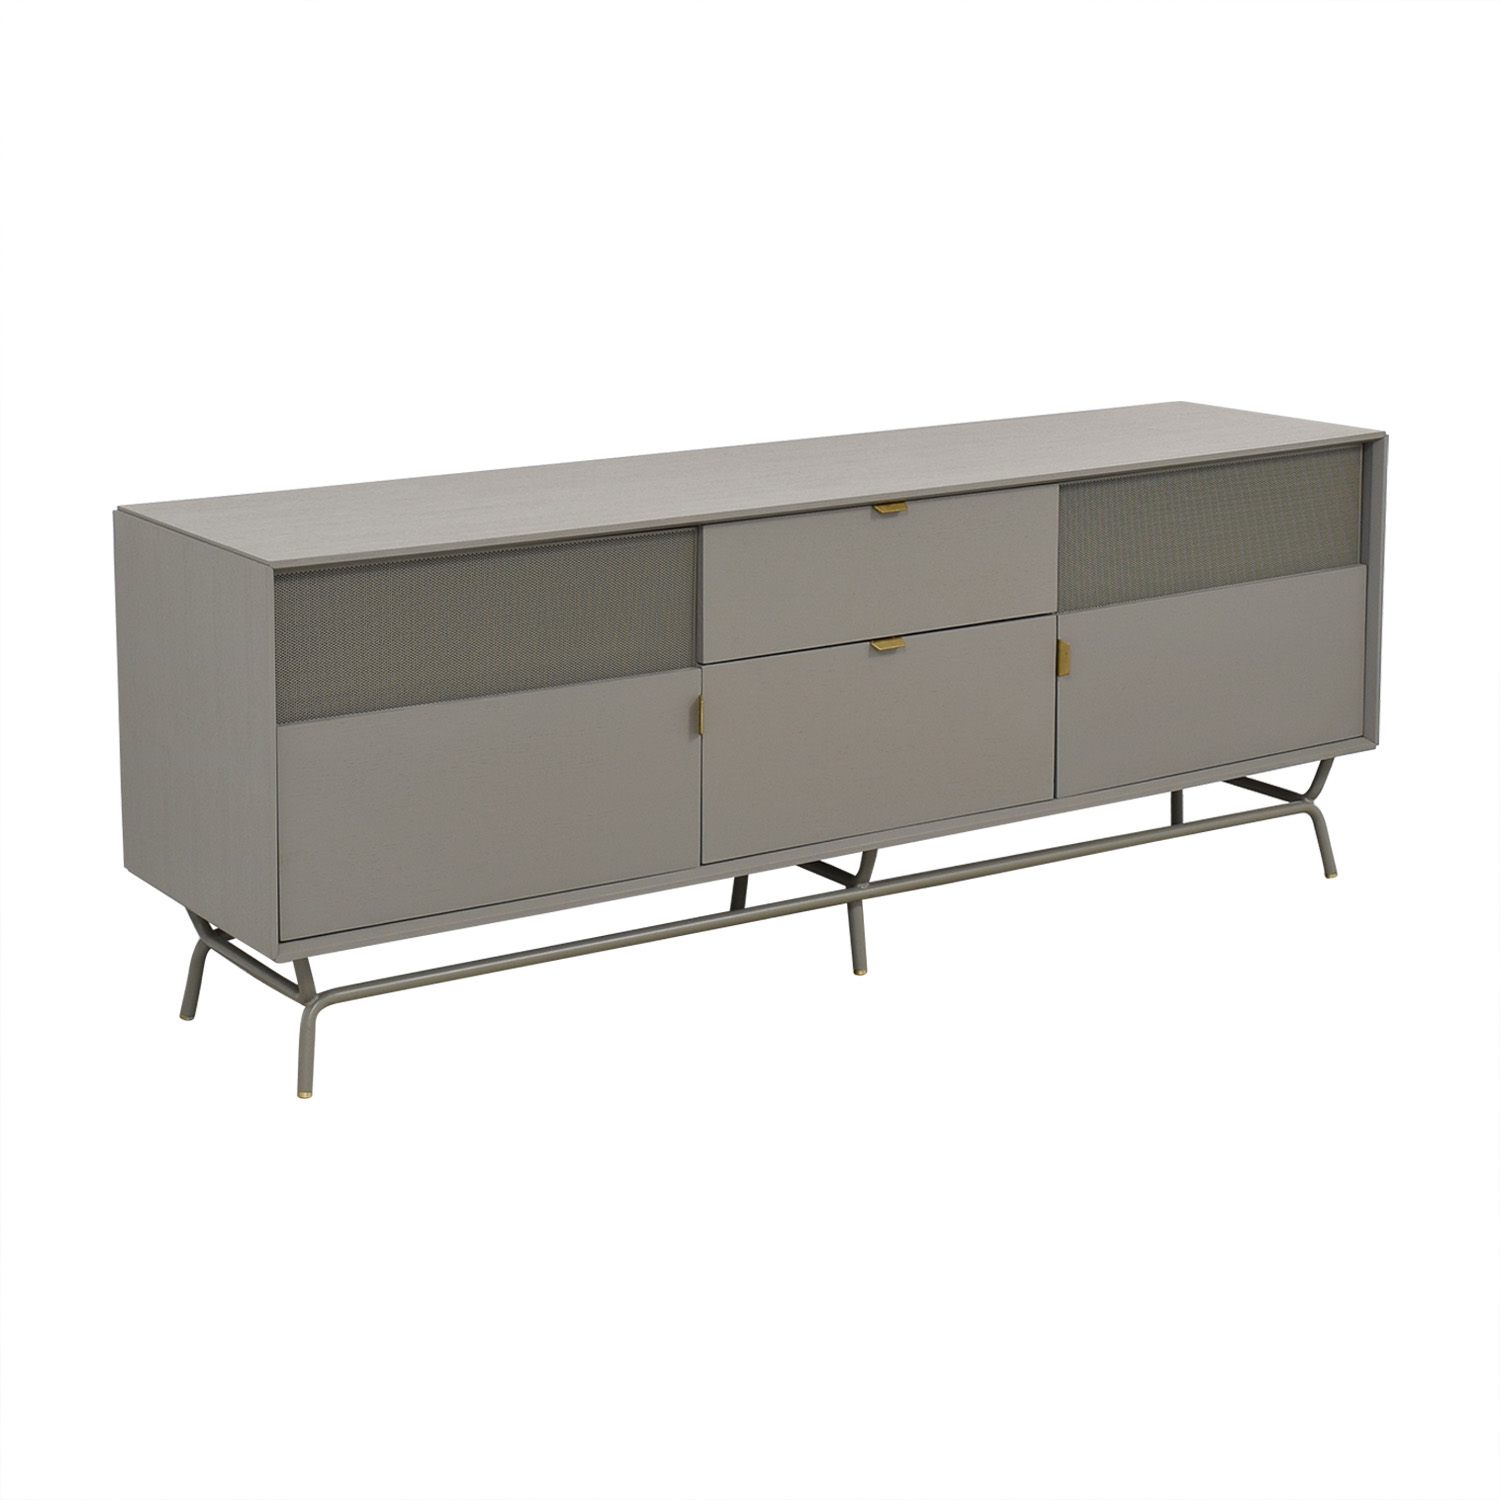 Blu Dot Blu Dot Dang 2 Door / 2 Drawer Console ma